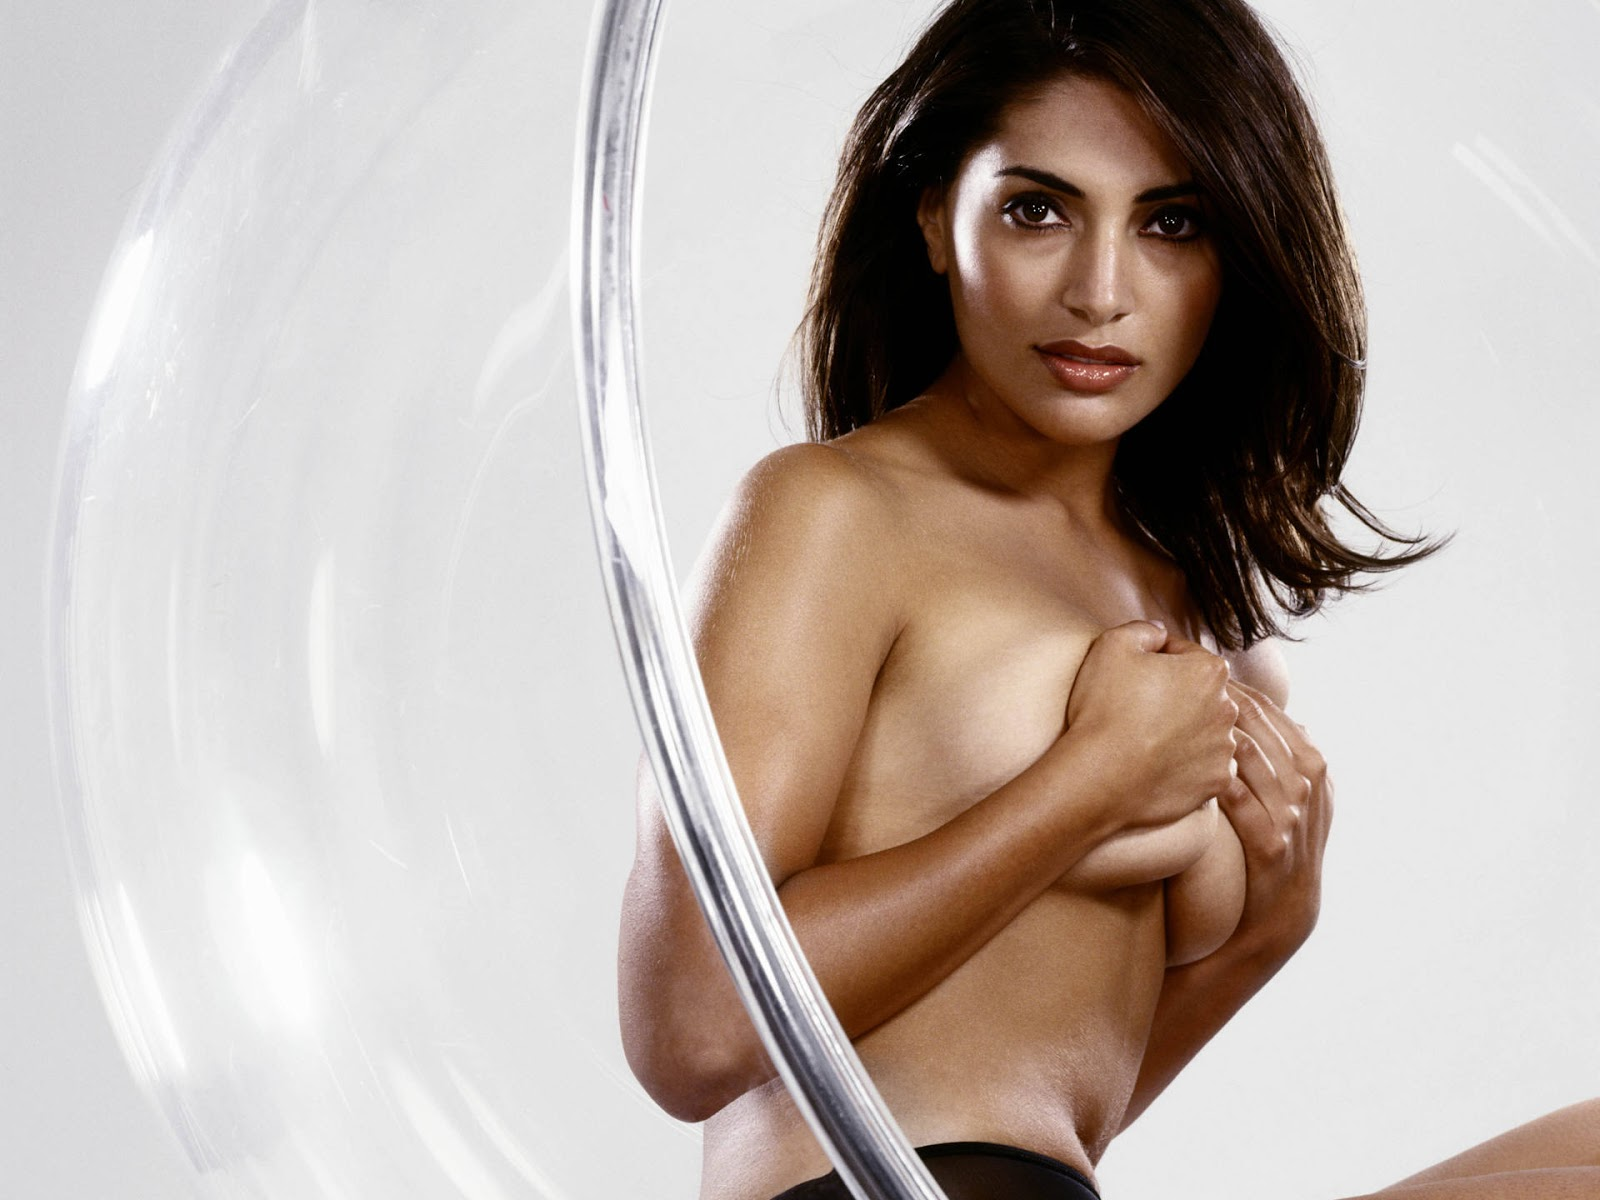 Has caterina murino ever been nude